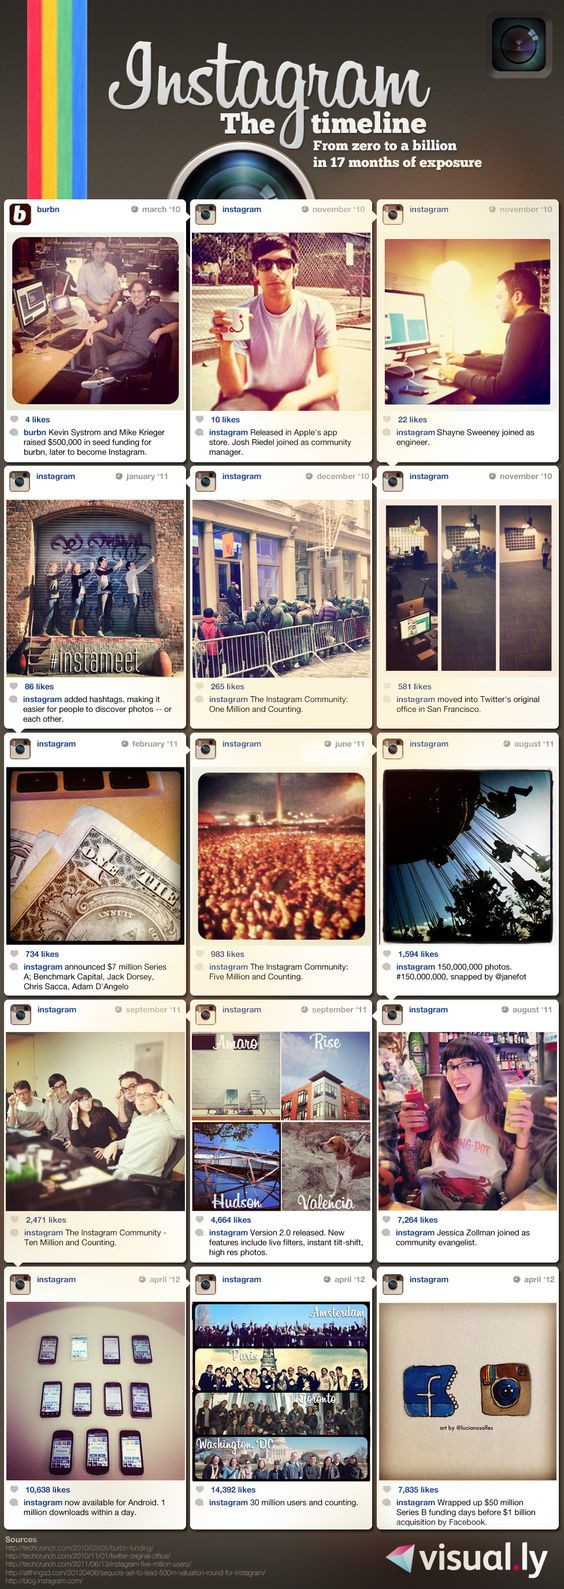 How Instagram Went From Zero To One Billion In 17 Months [Infographic]